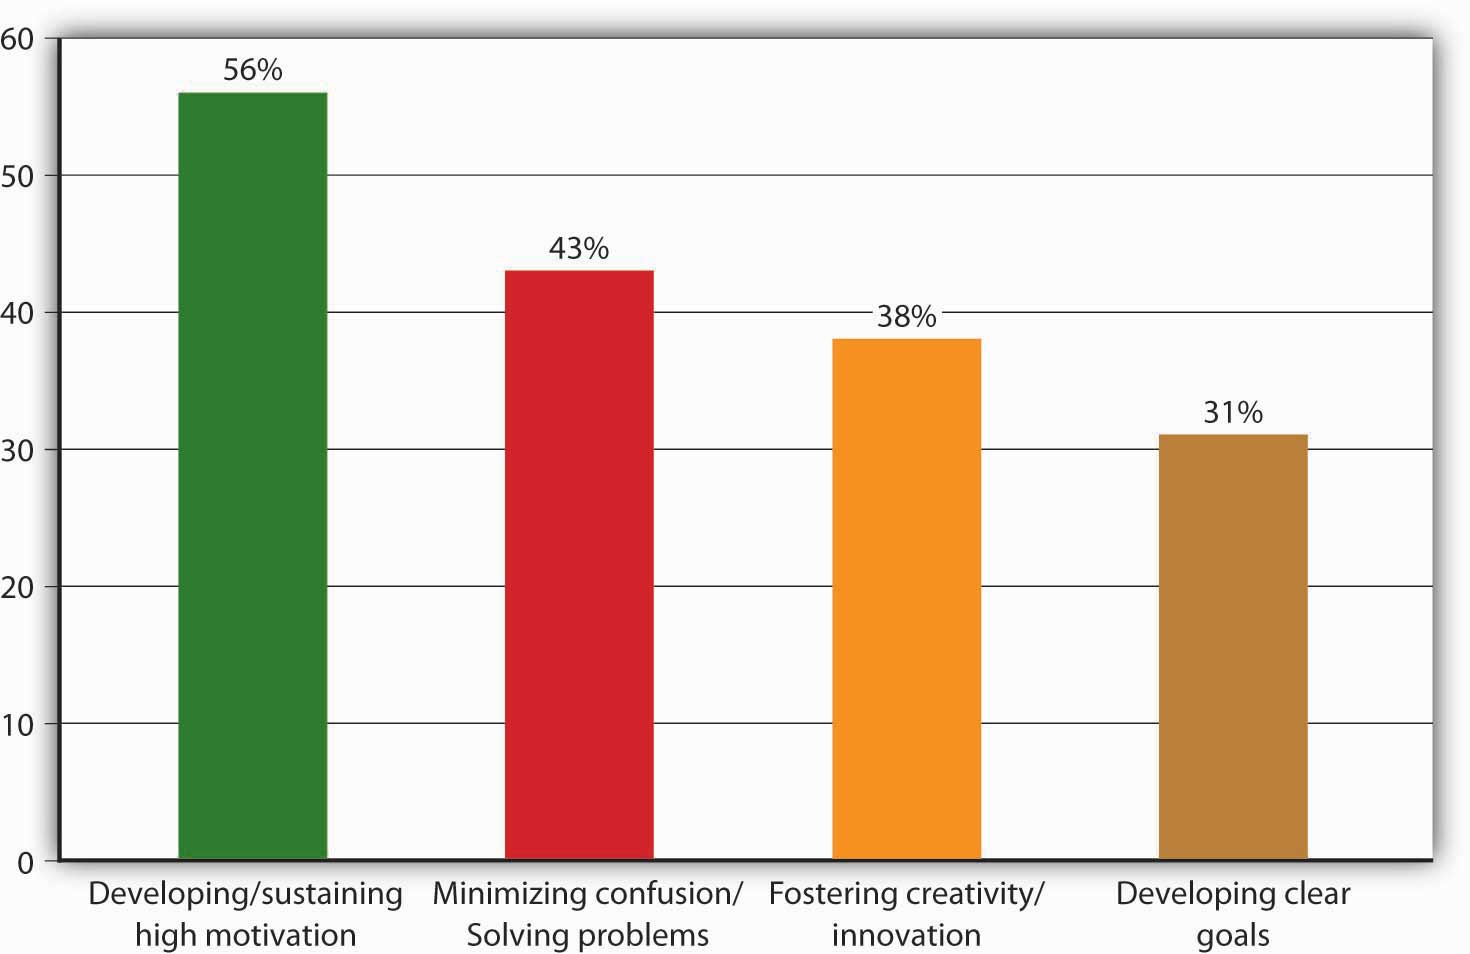 Sources of Frustration (from highest to lowest): Developing/sustaining high motivation, minimizing confusion/Solving problems, Fostering creativity/innovation, Developing clear goals